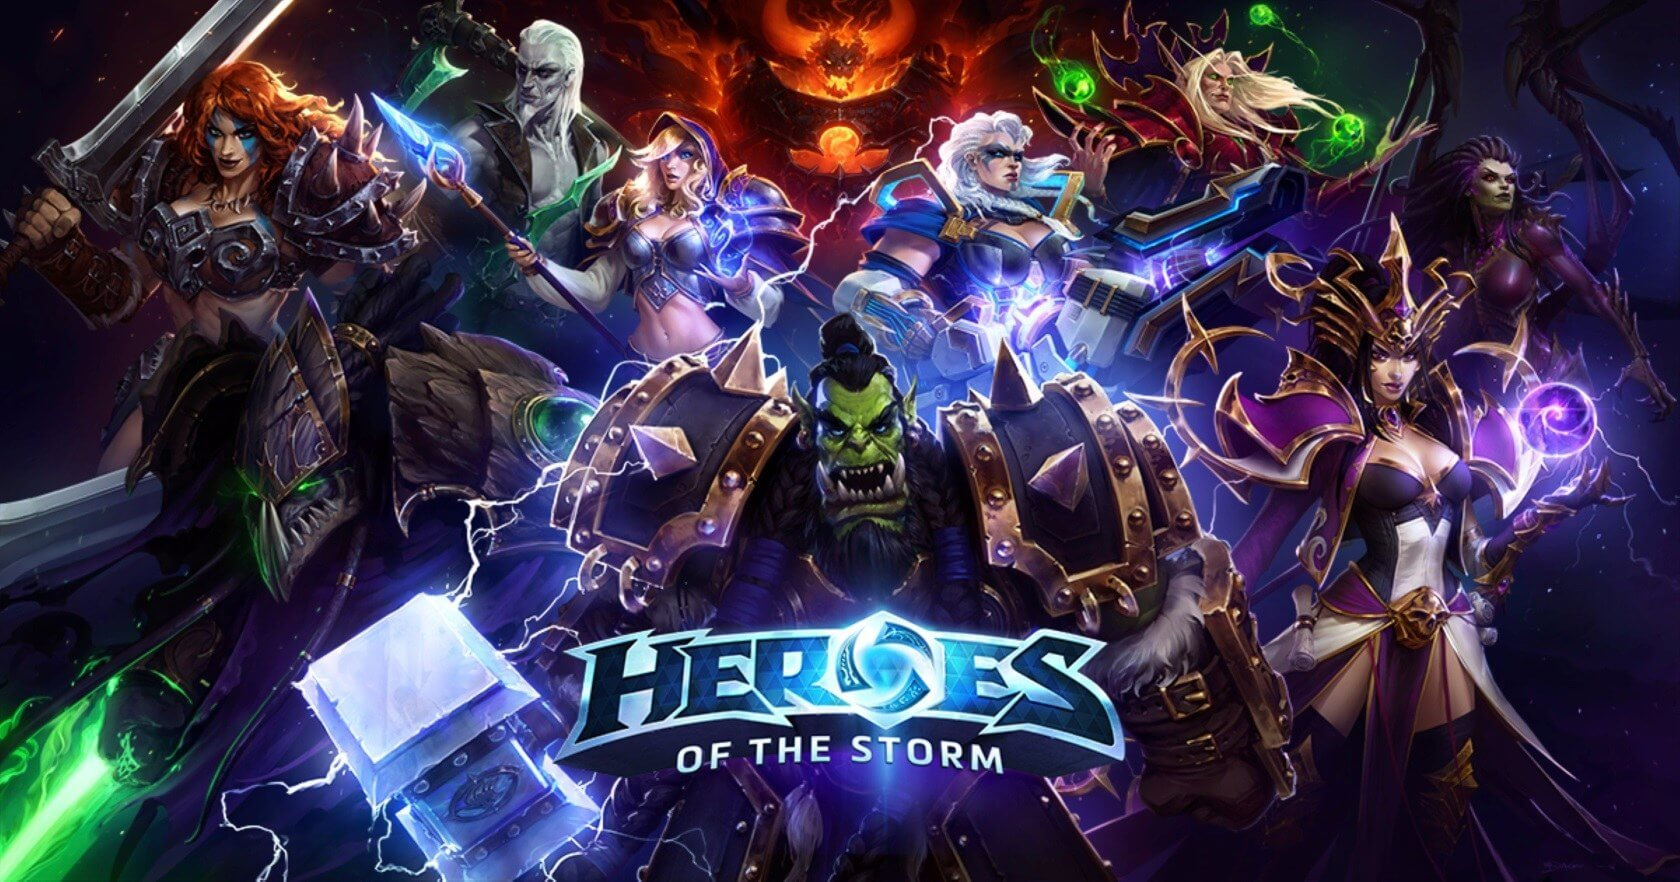 Blizzard's 'Heroes of the Storm' scaled back, developers shift to other games